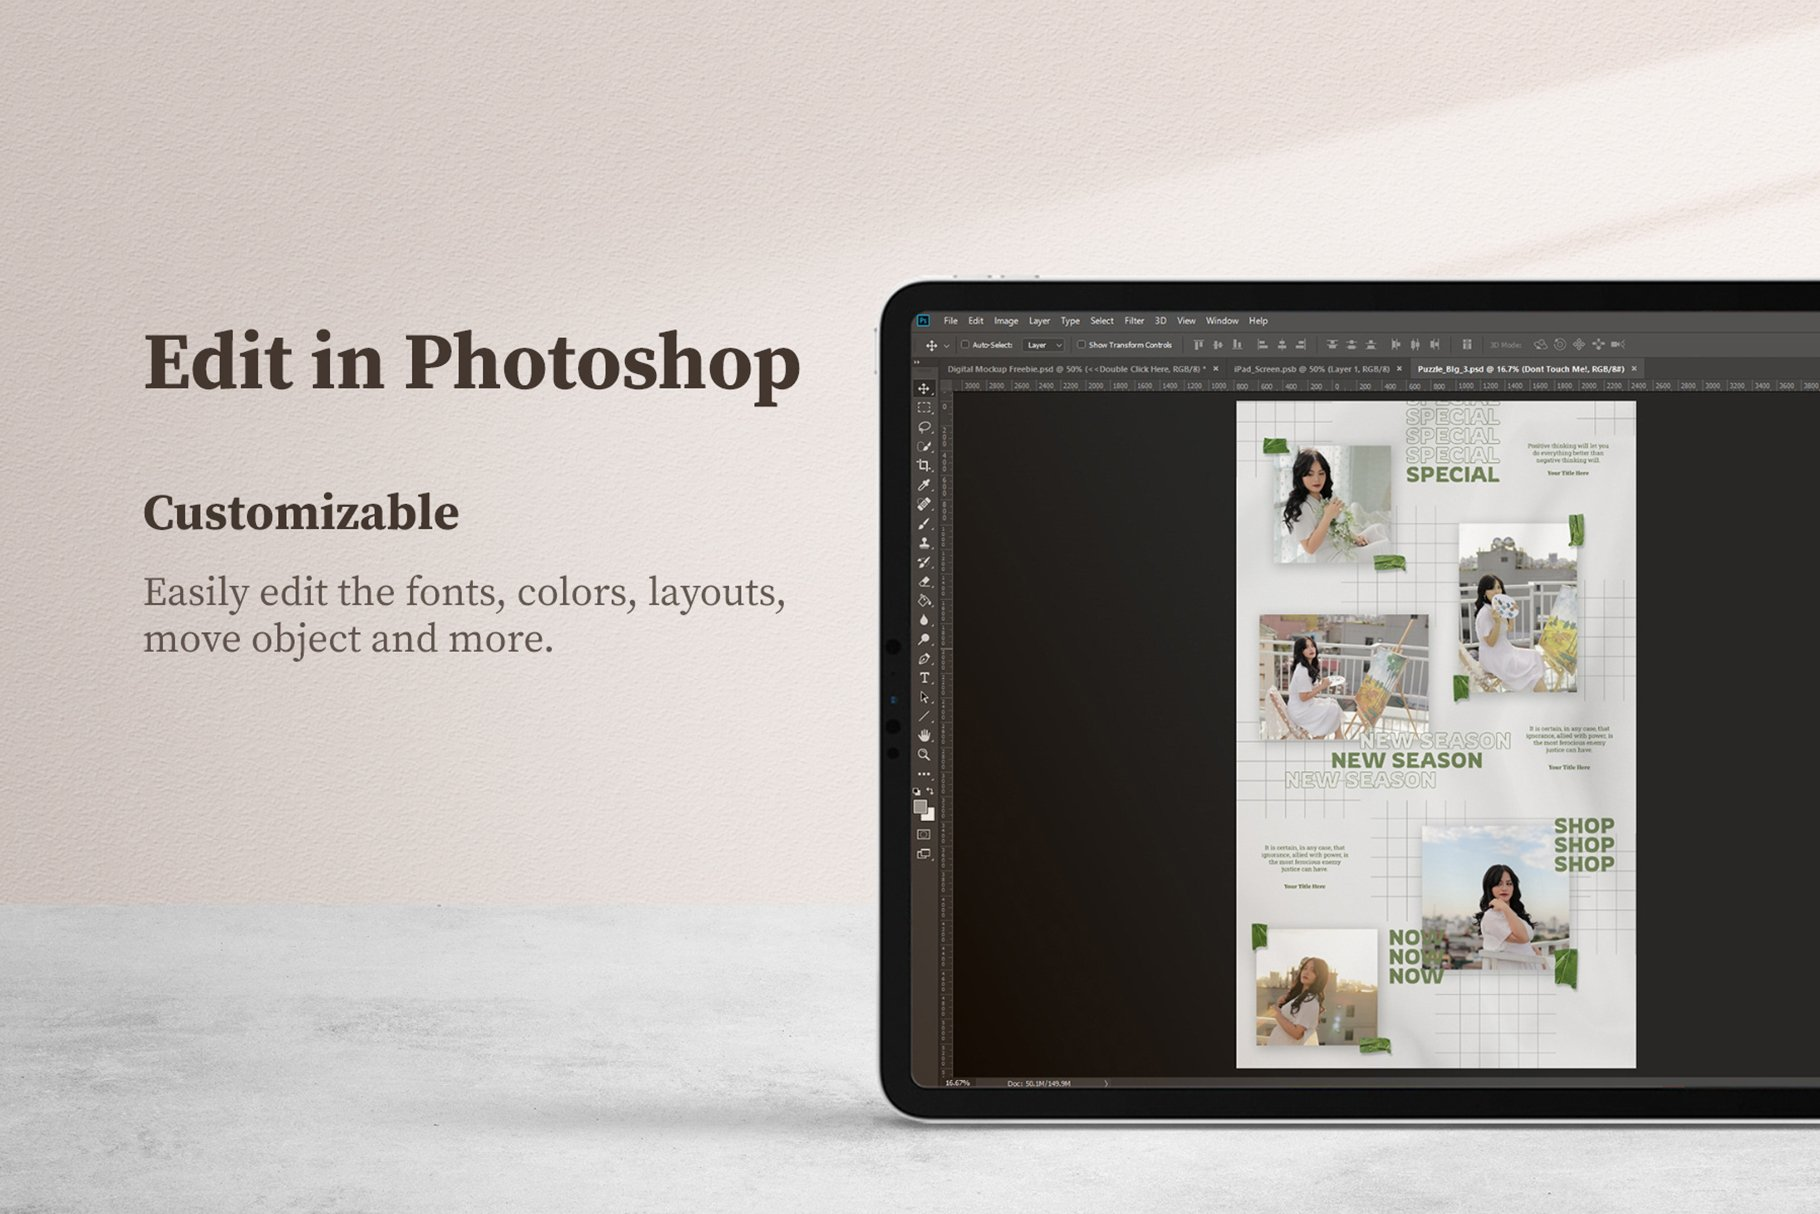 You can easily edit template in Photoshop.